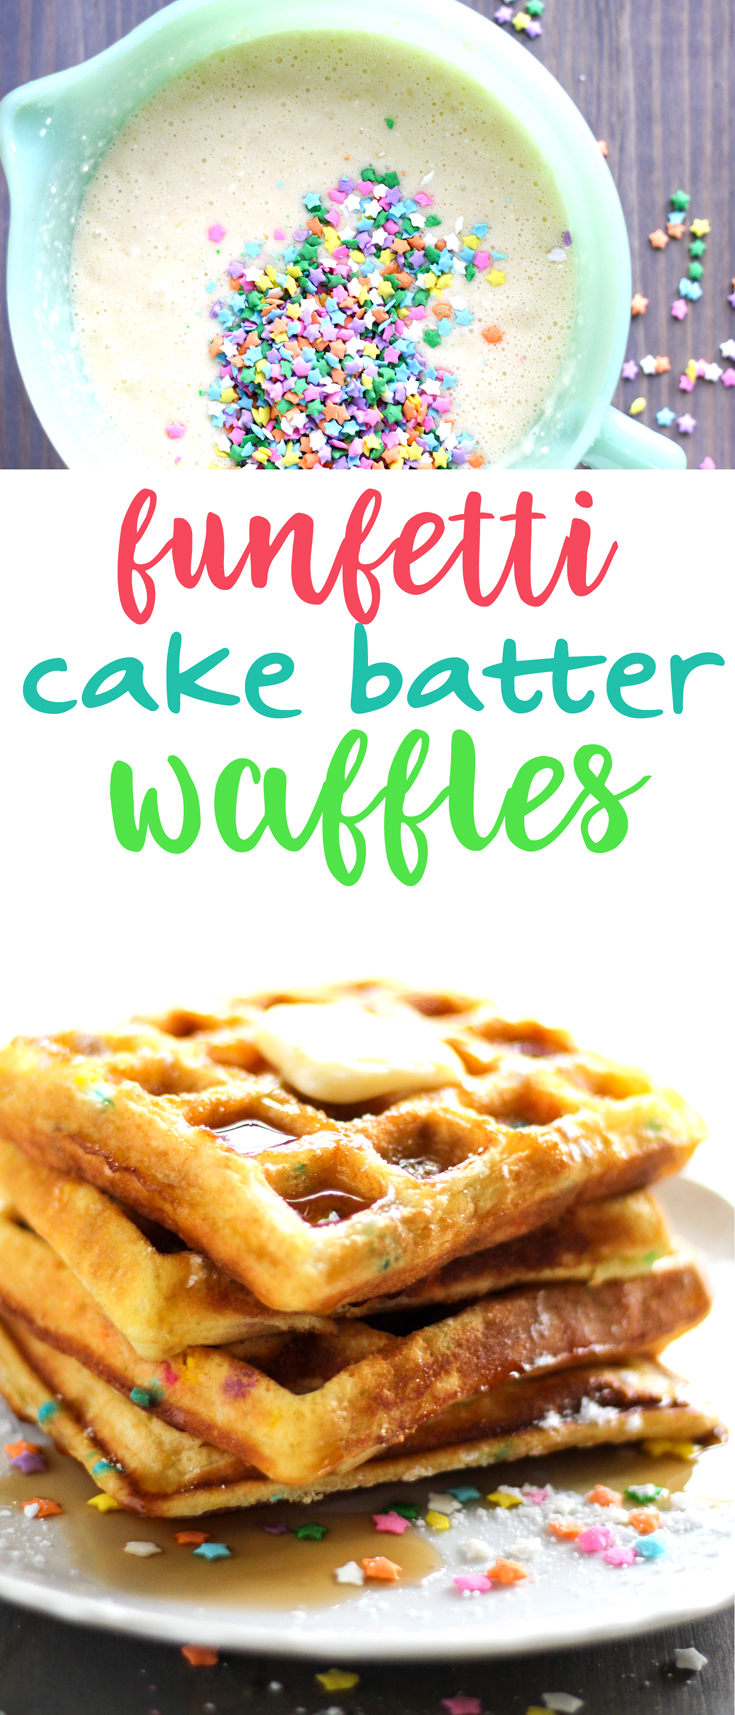 Golden and buttery cake waffles filled with funfetti sprinkles. Perfect for an indulgent breakfast or fun dessert idea. #cakewaffles